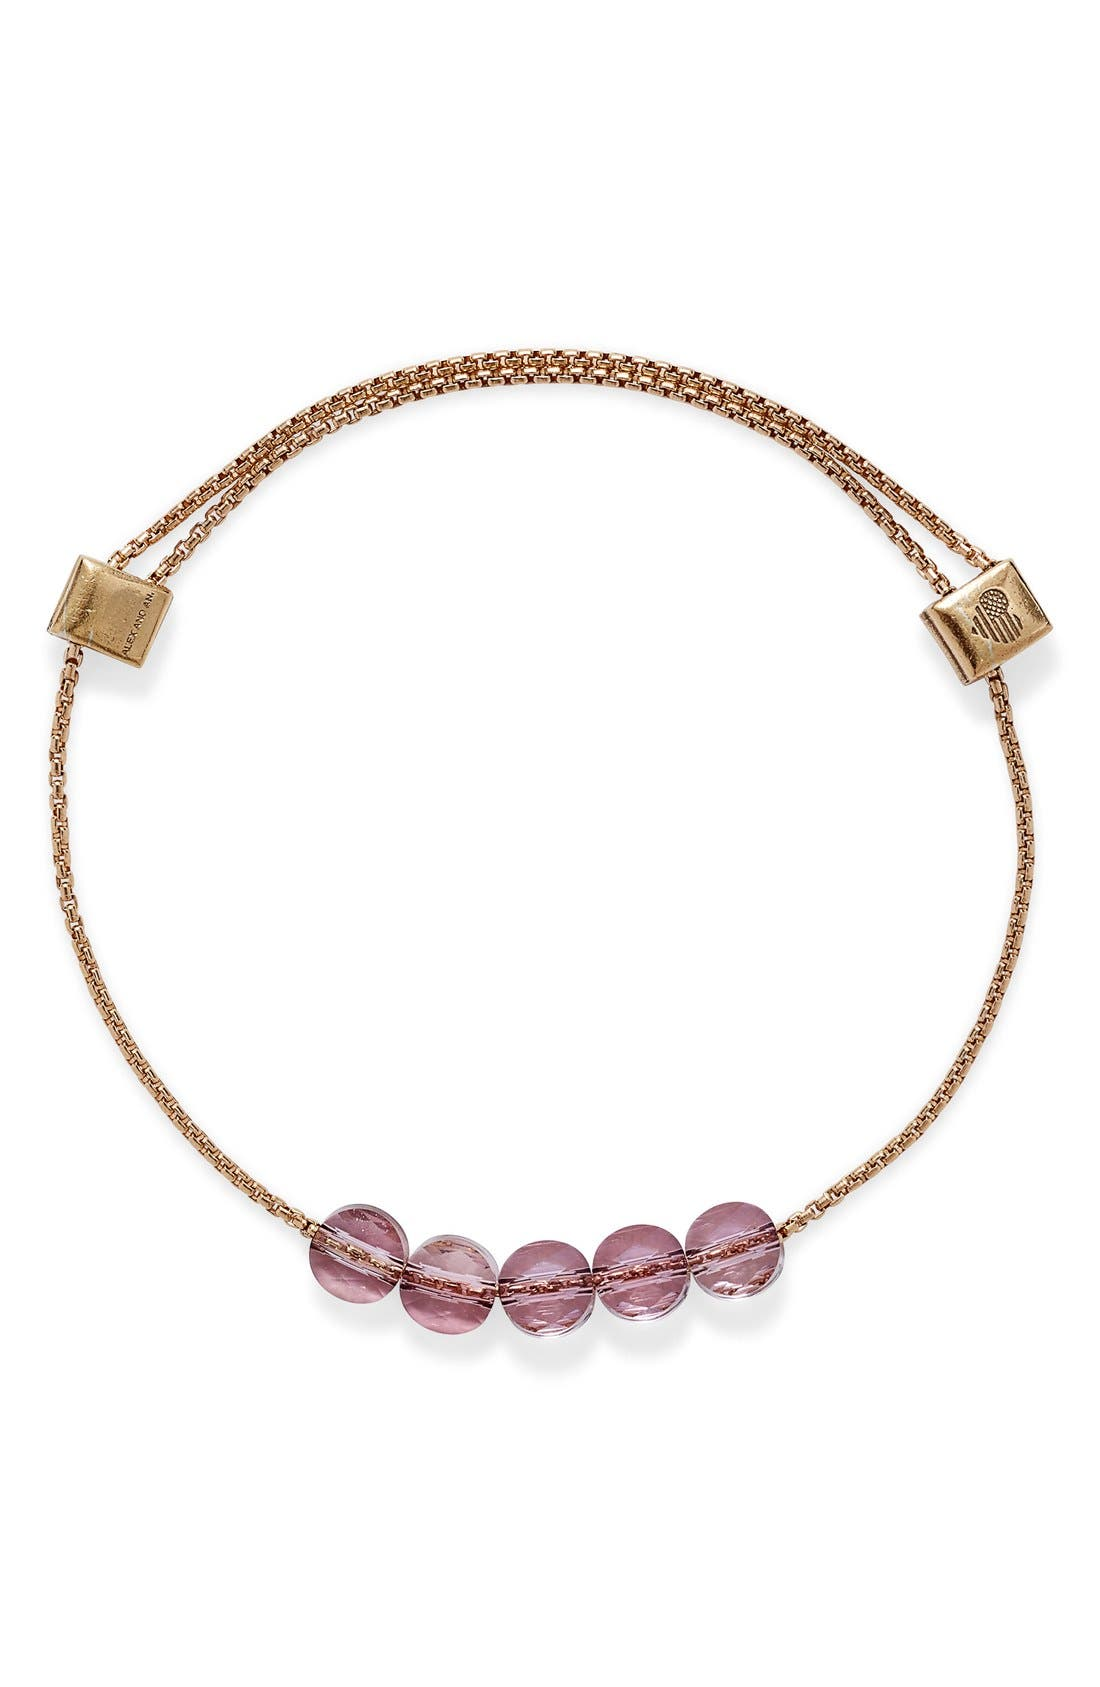 Alex and Ani 'Crystal Infusion' Beaded Expandable Bracelet